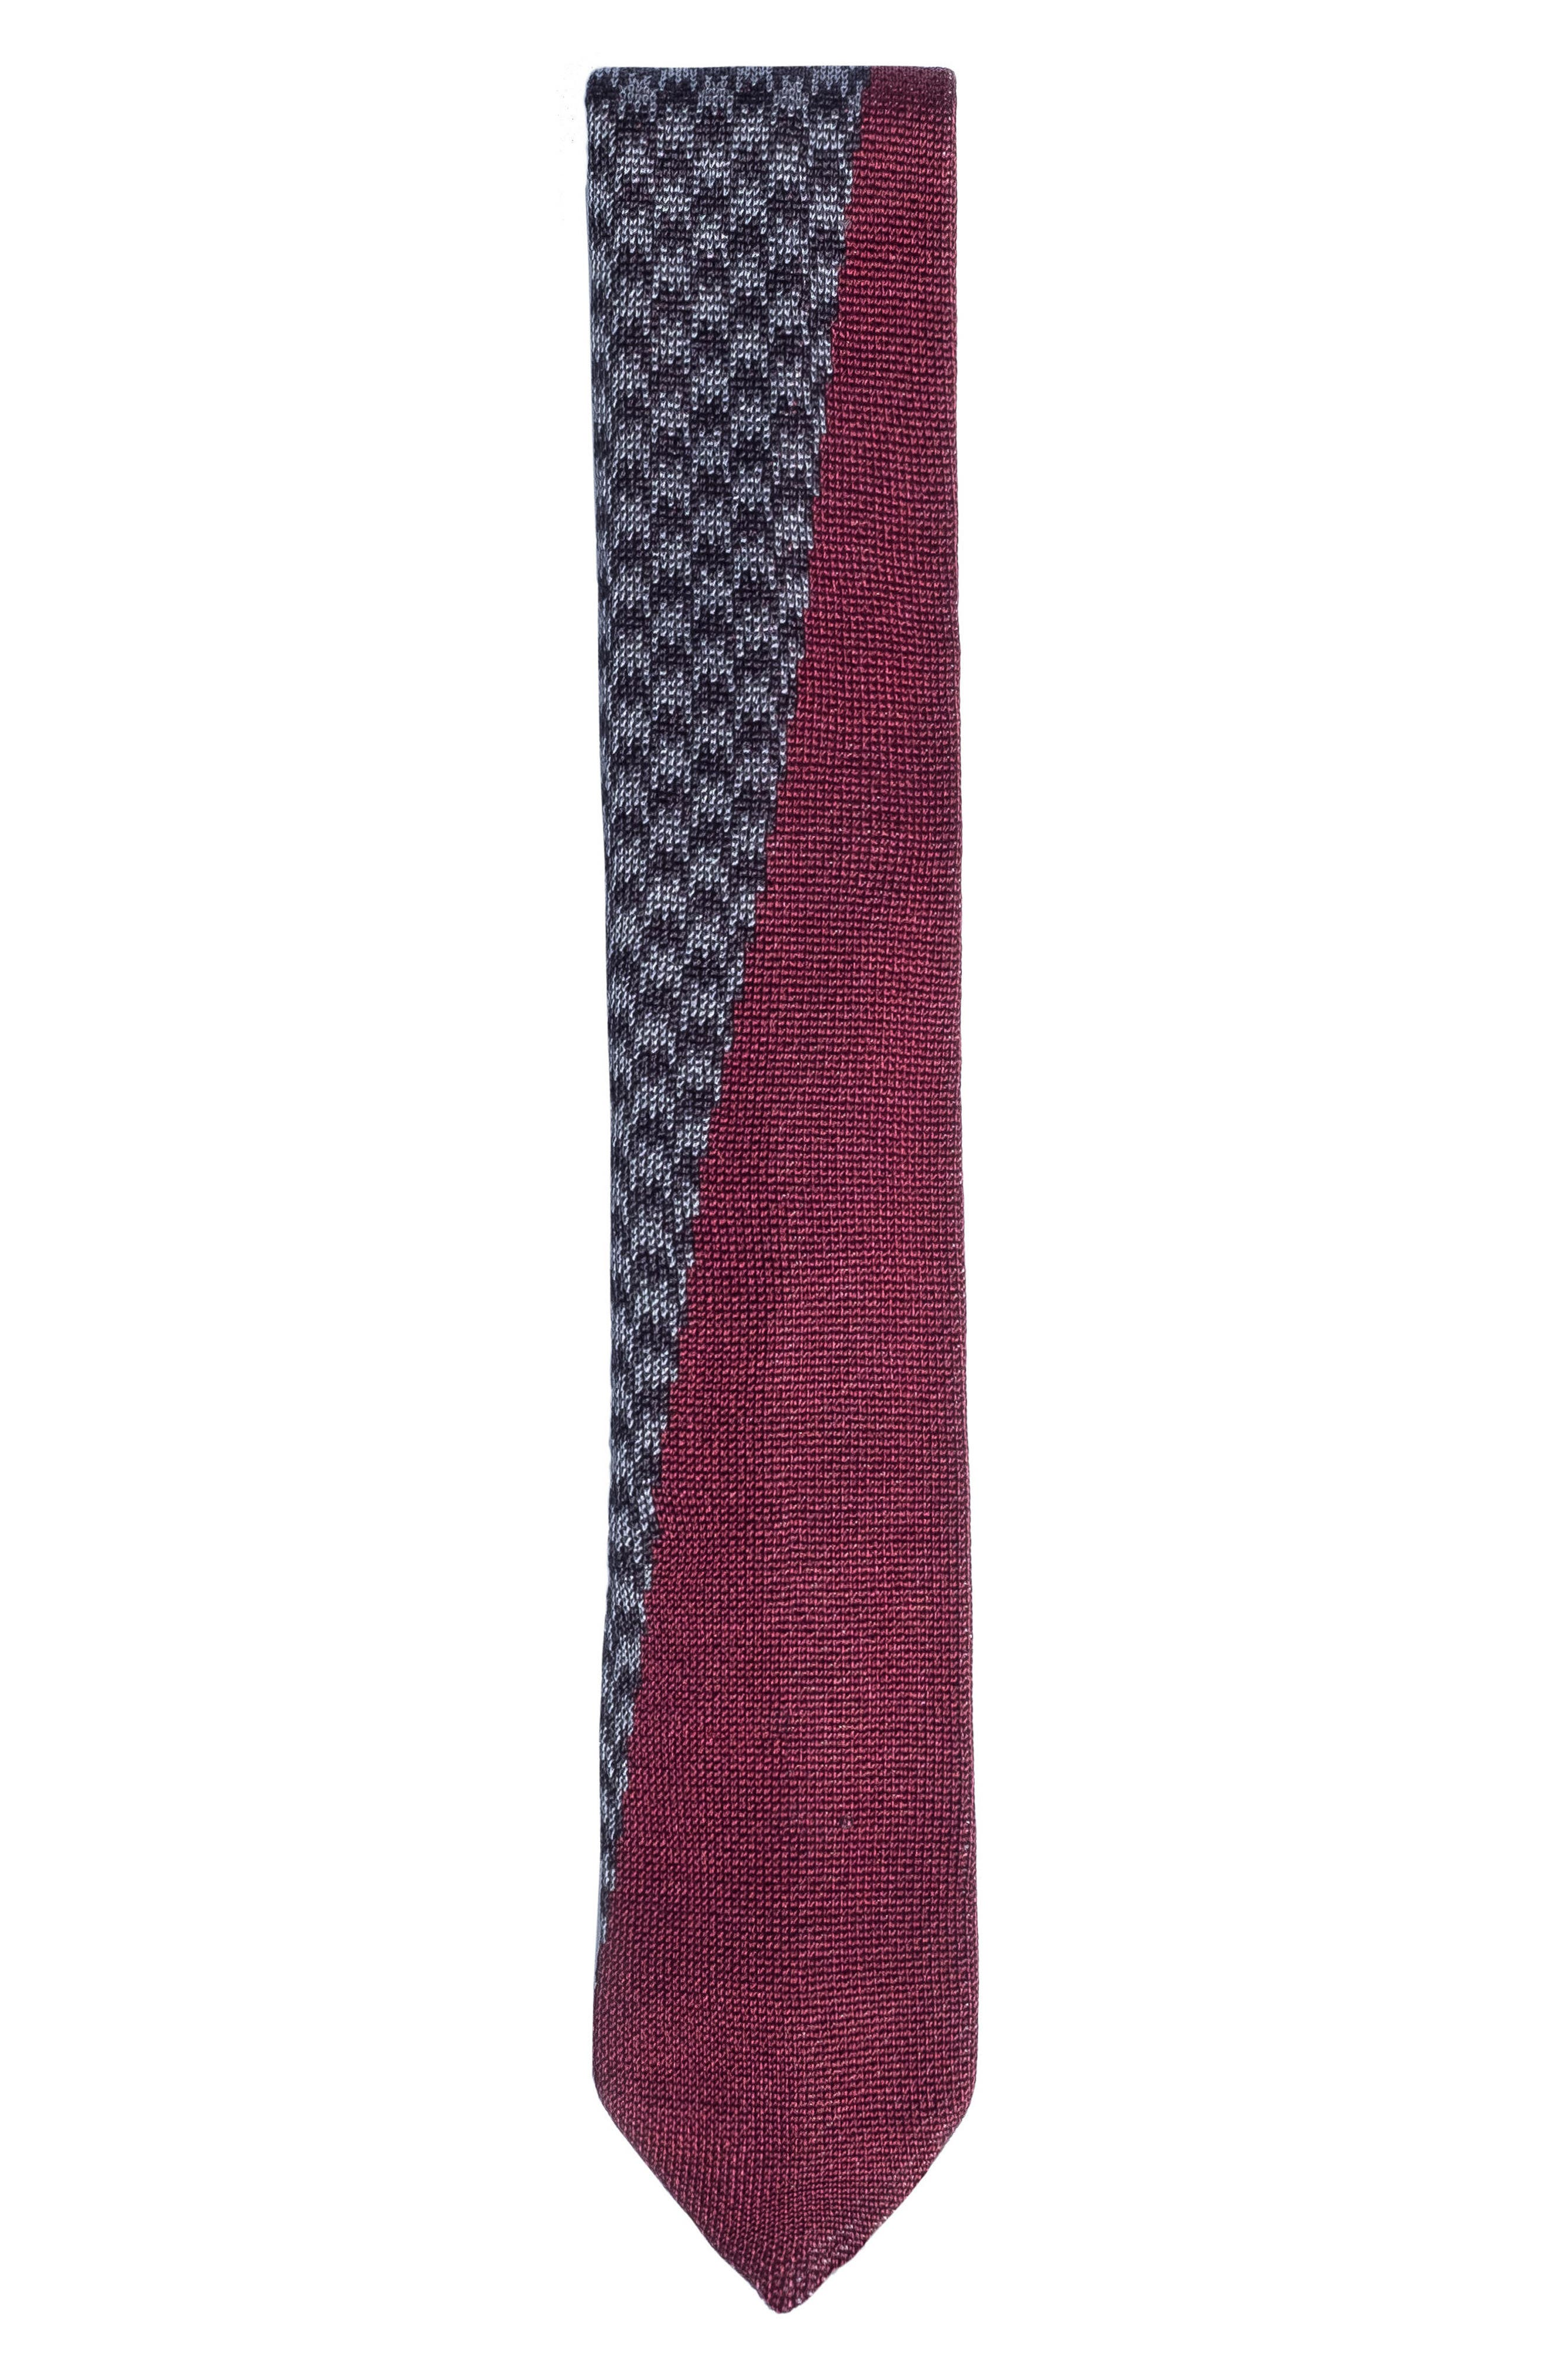 Knit Silk Tie,                             Main thumbnail 1, color,                             GREY/ RED